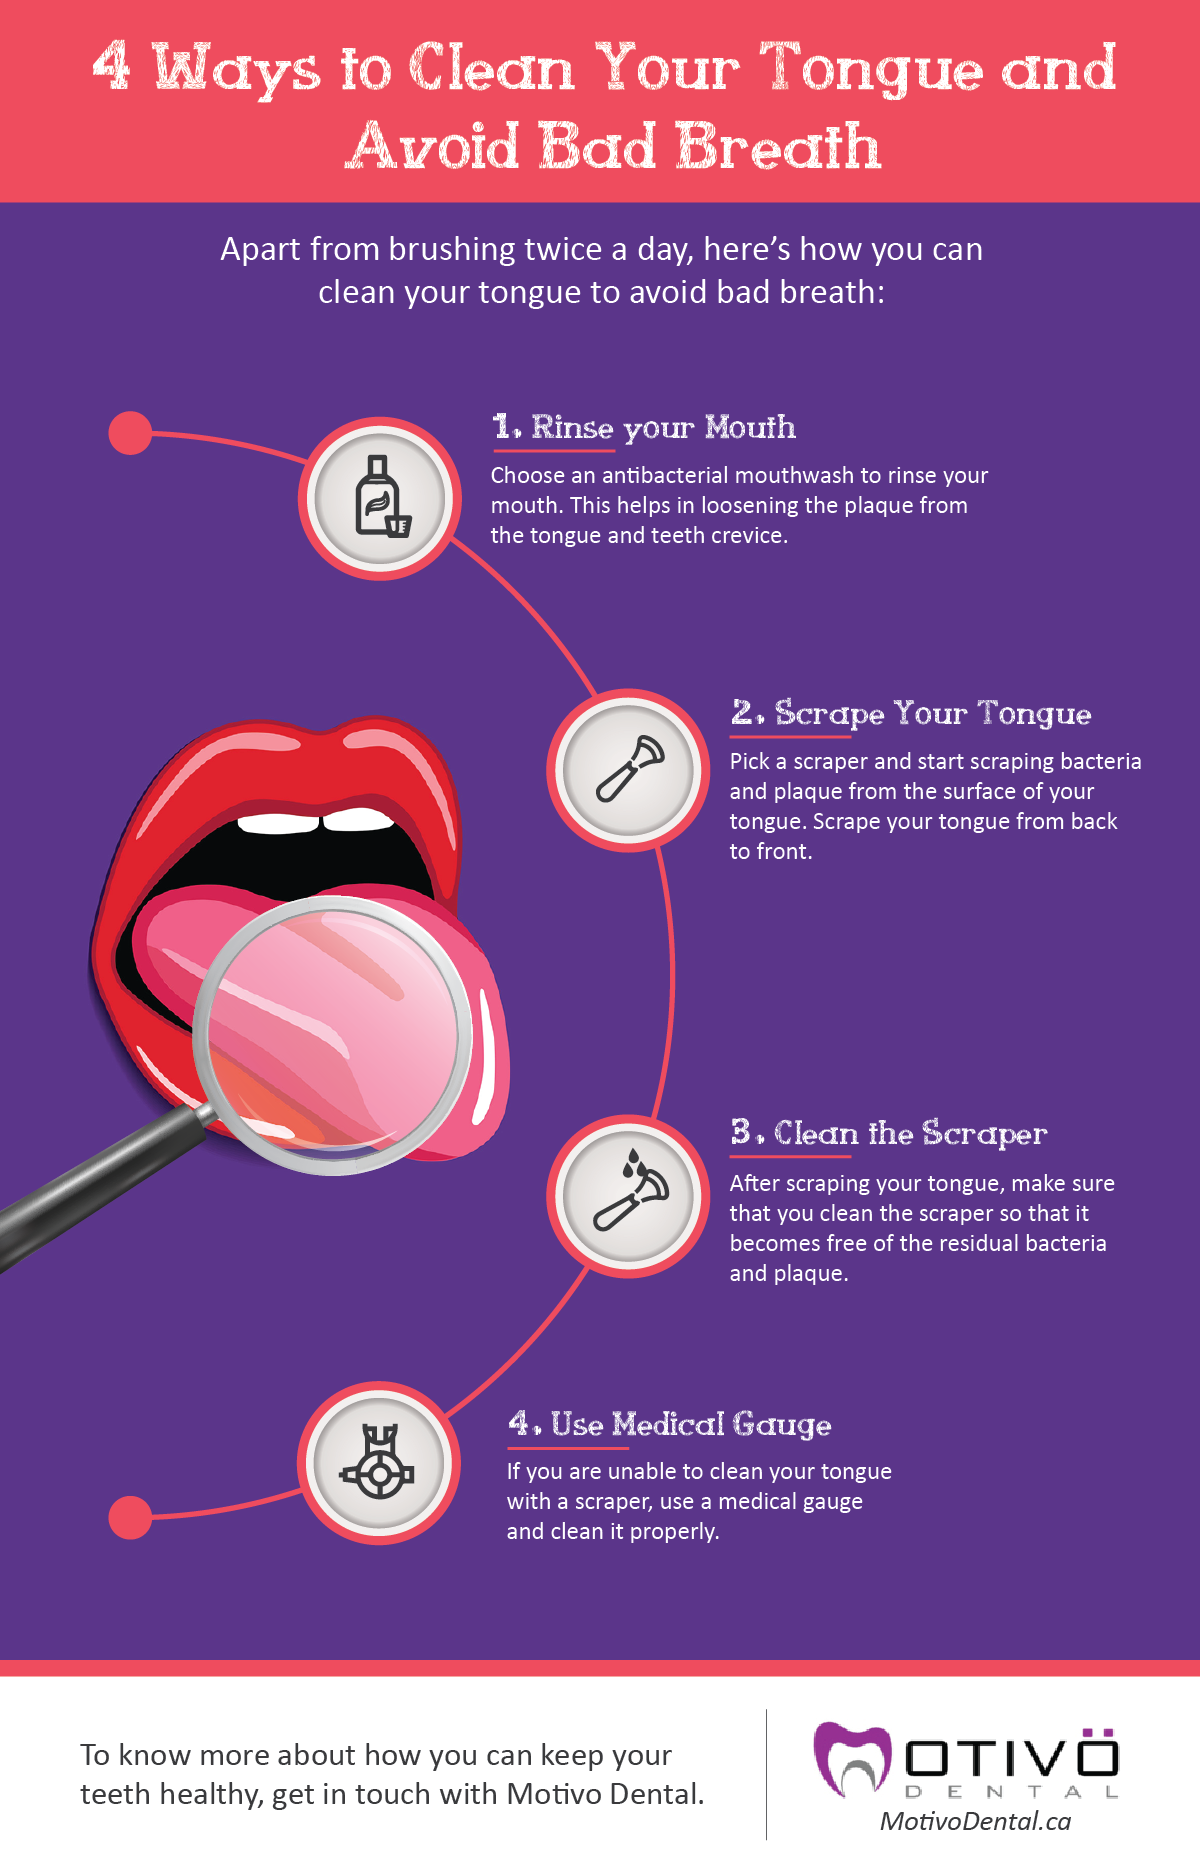 Avoid Bad Breath